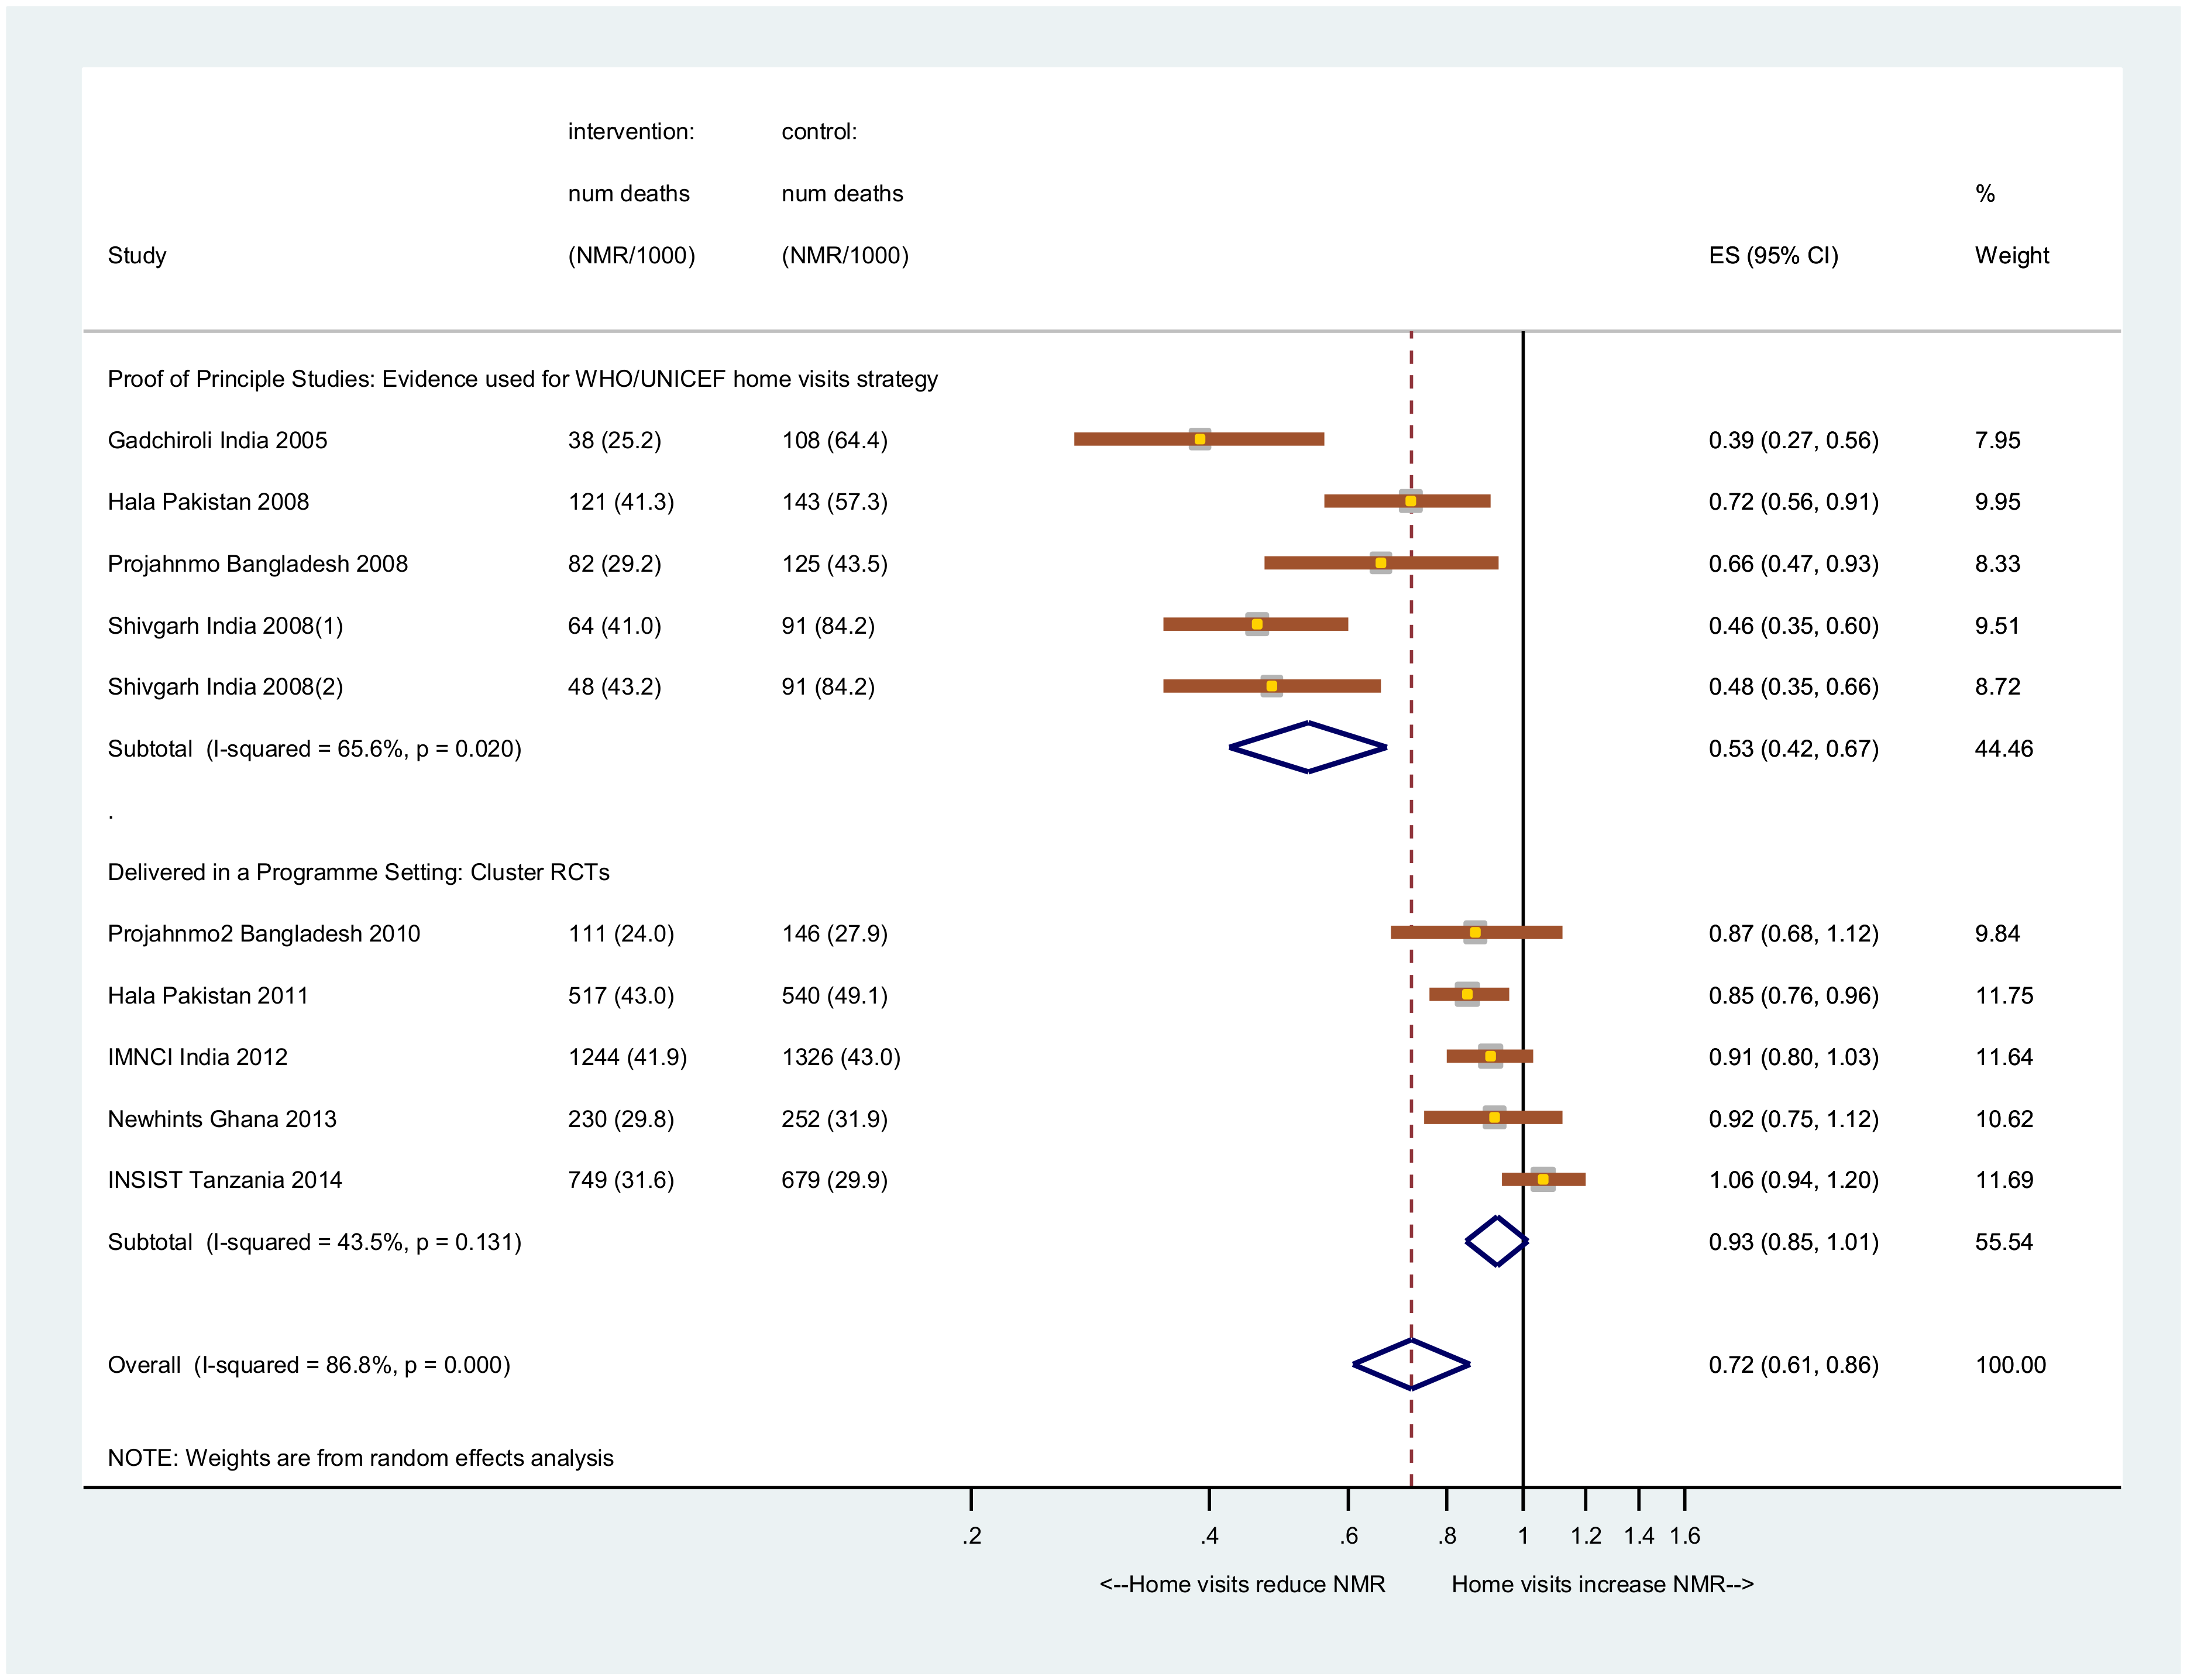 Meta-analysis of the effect of home visits on NMR.